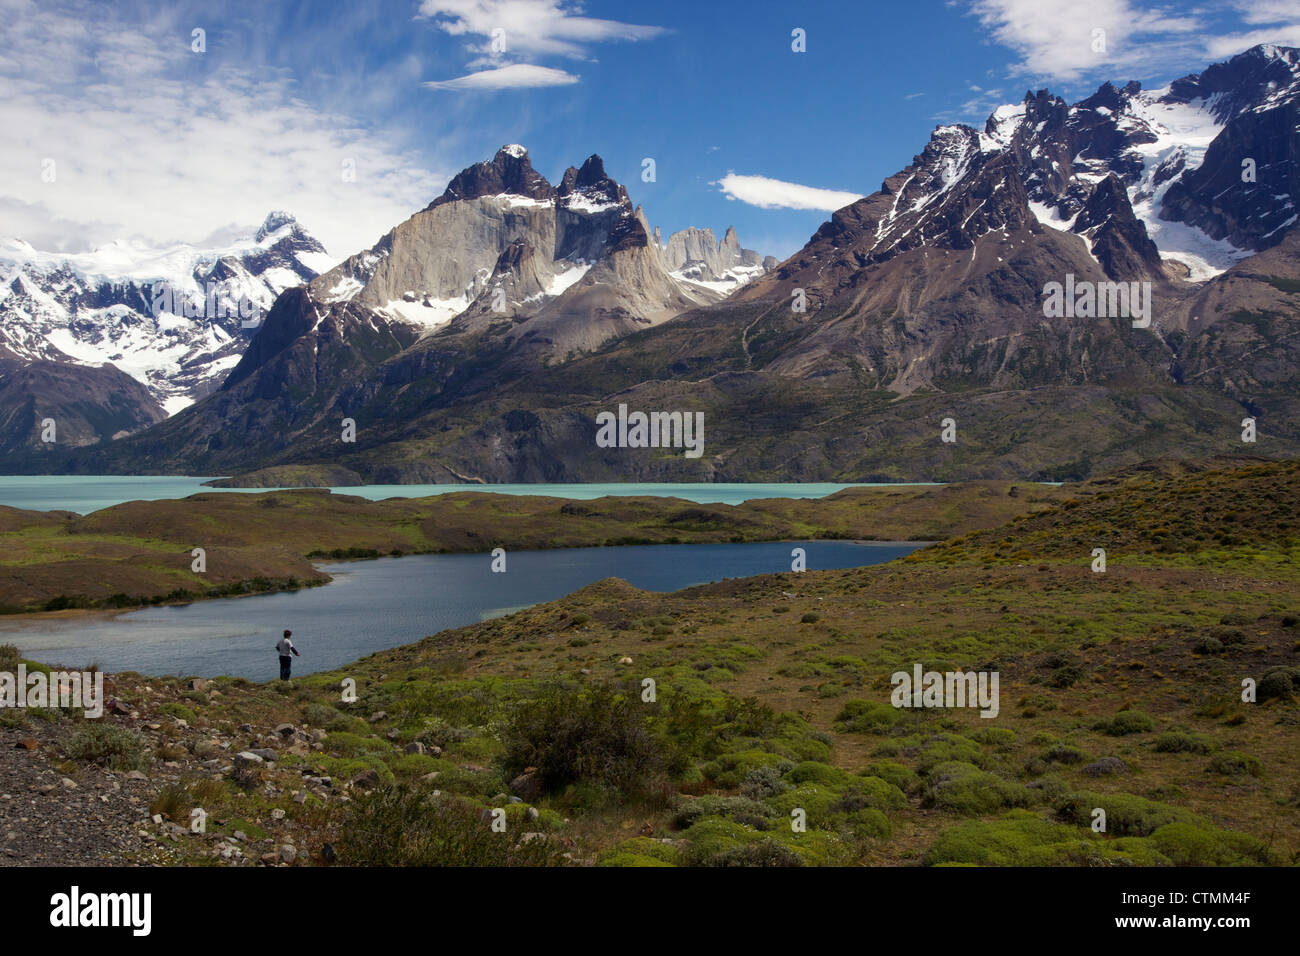 View of Los Cuernos over Lago Nordenskjold, Torres del Paine National Park, Patagonia, Chile - Stock Image